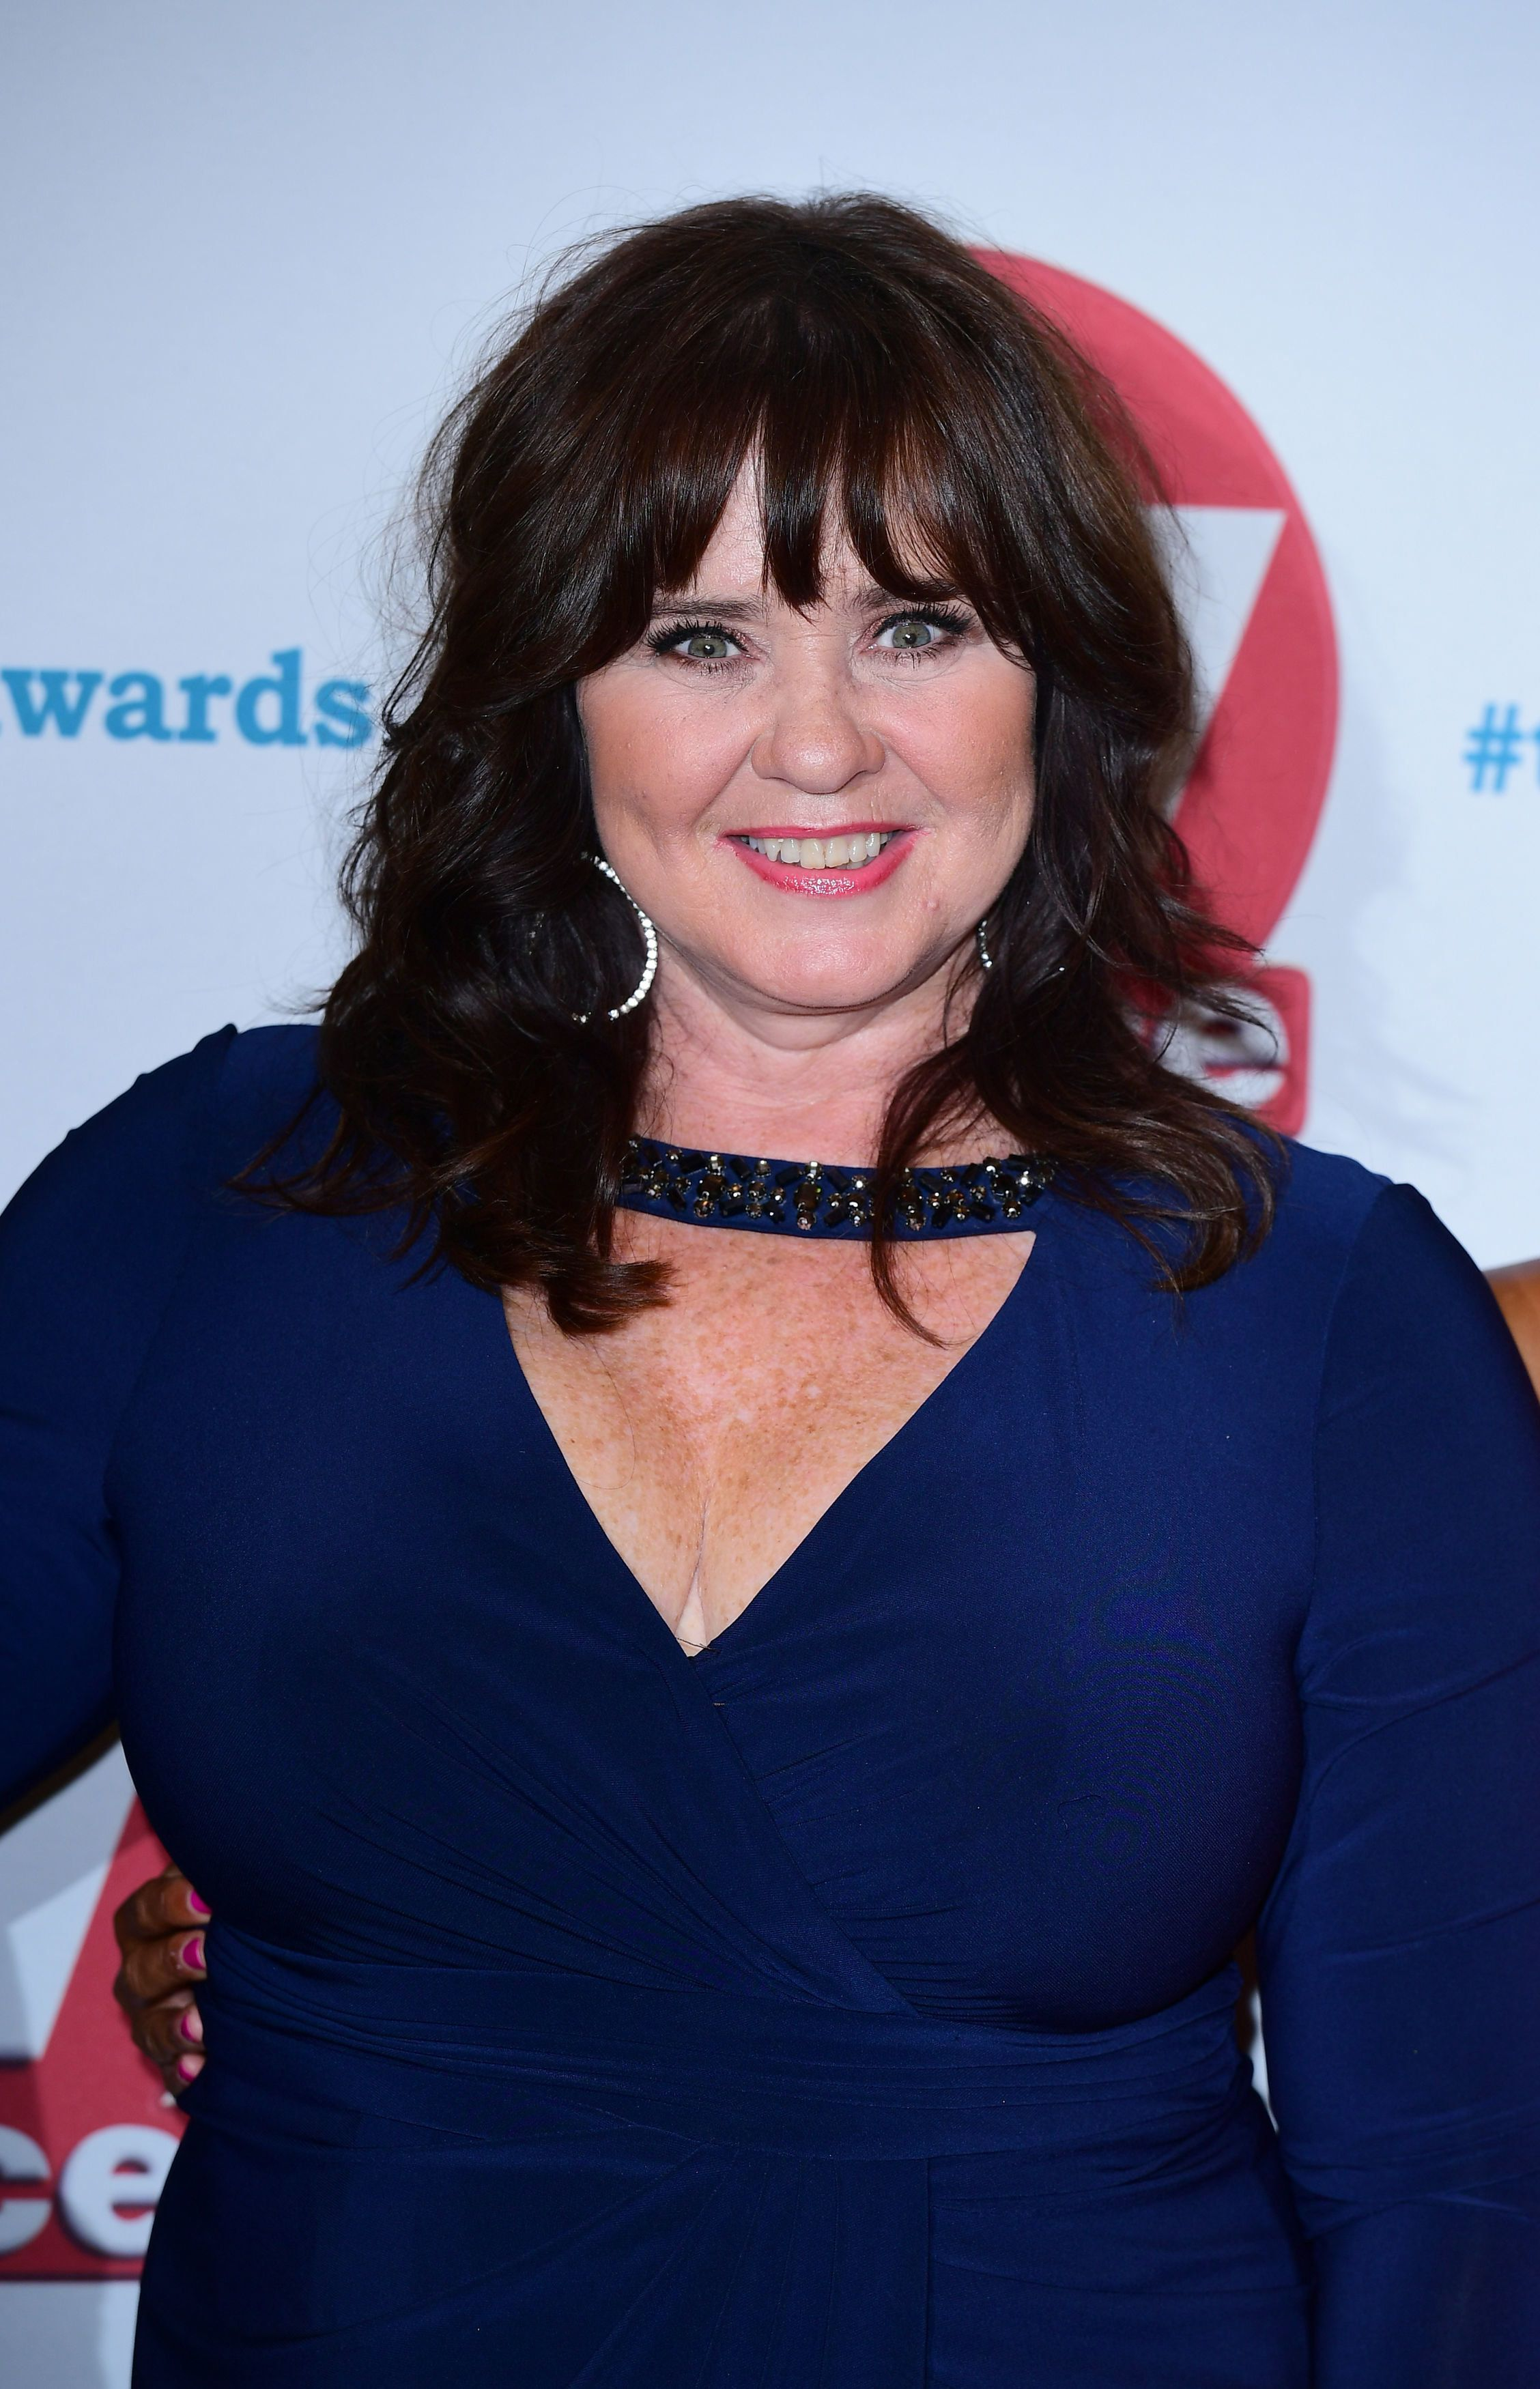 Coleen Nolan Quits 'Loose Women' And Cancels Tour After Kim Woodburn